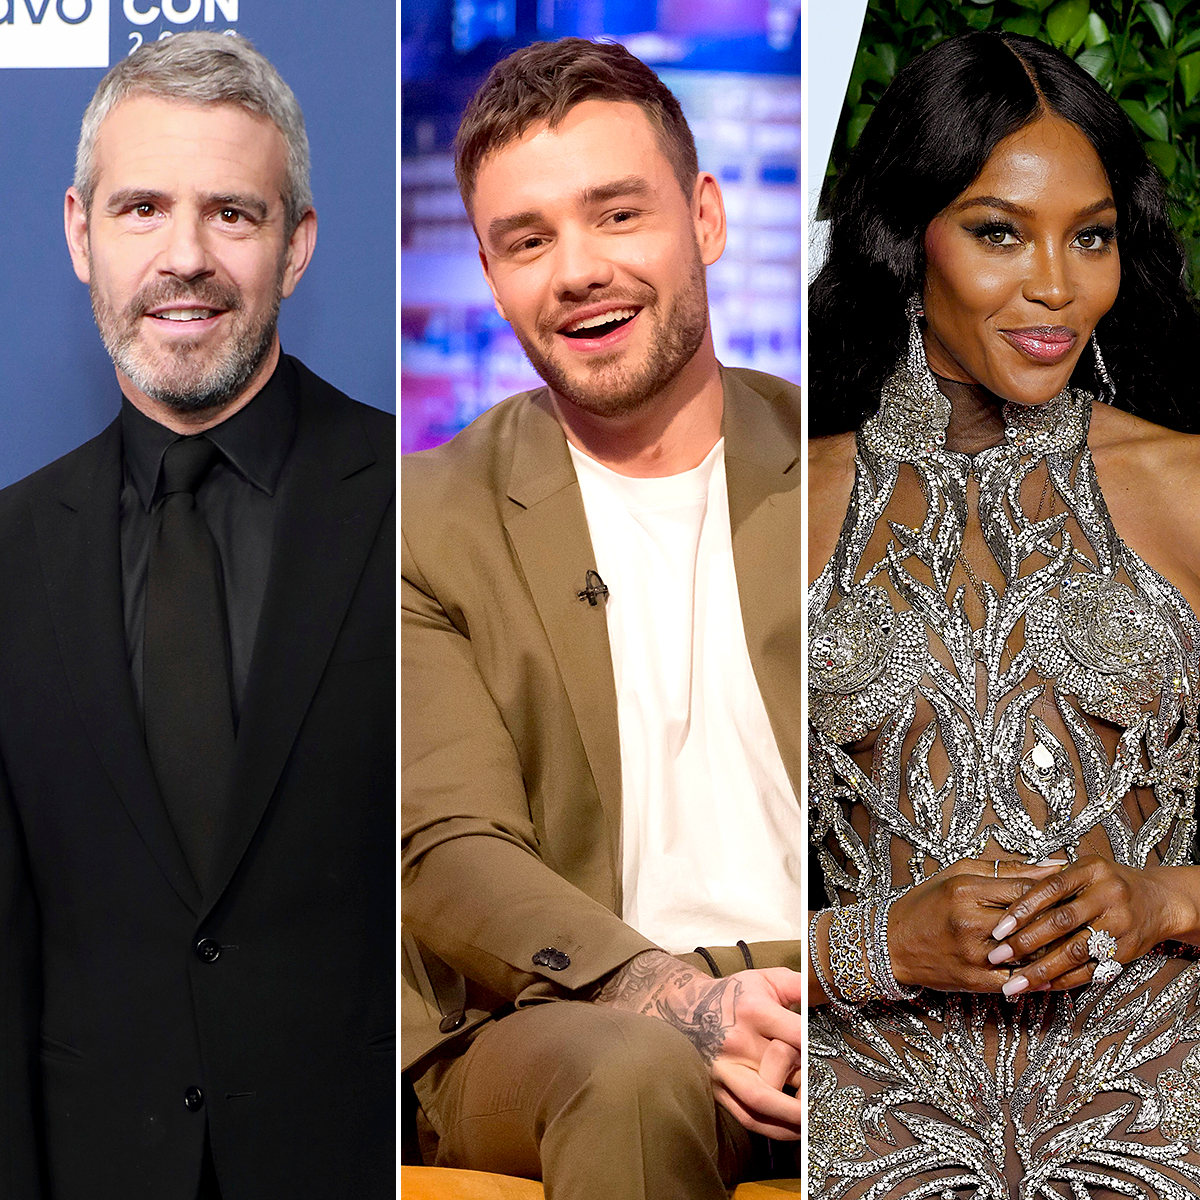 Andy-Cohen-Grills-Liam-Payne-About-Those-Naomi-Campbell-Romance-Rumors